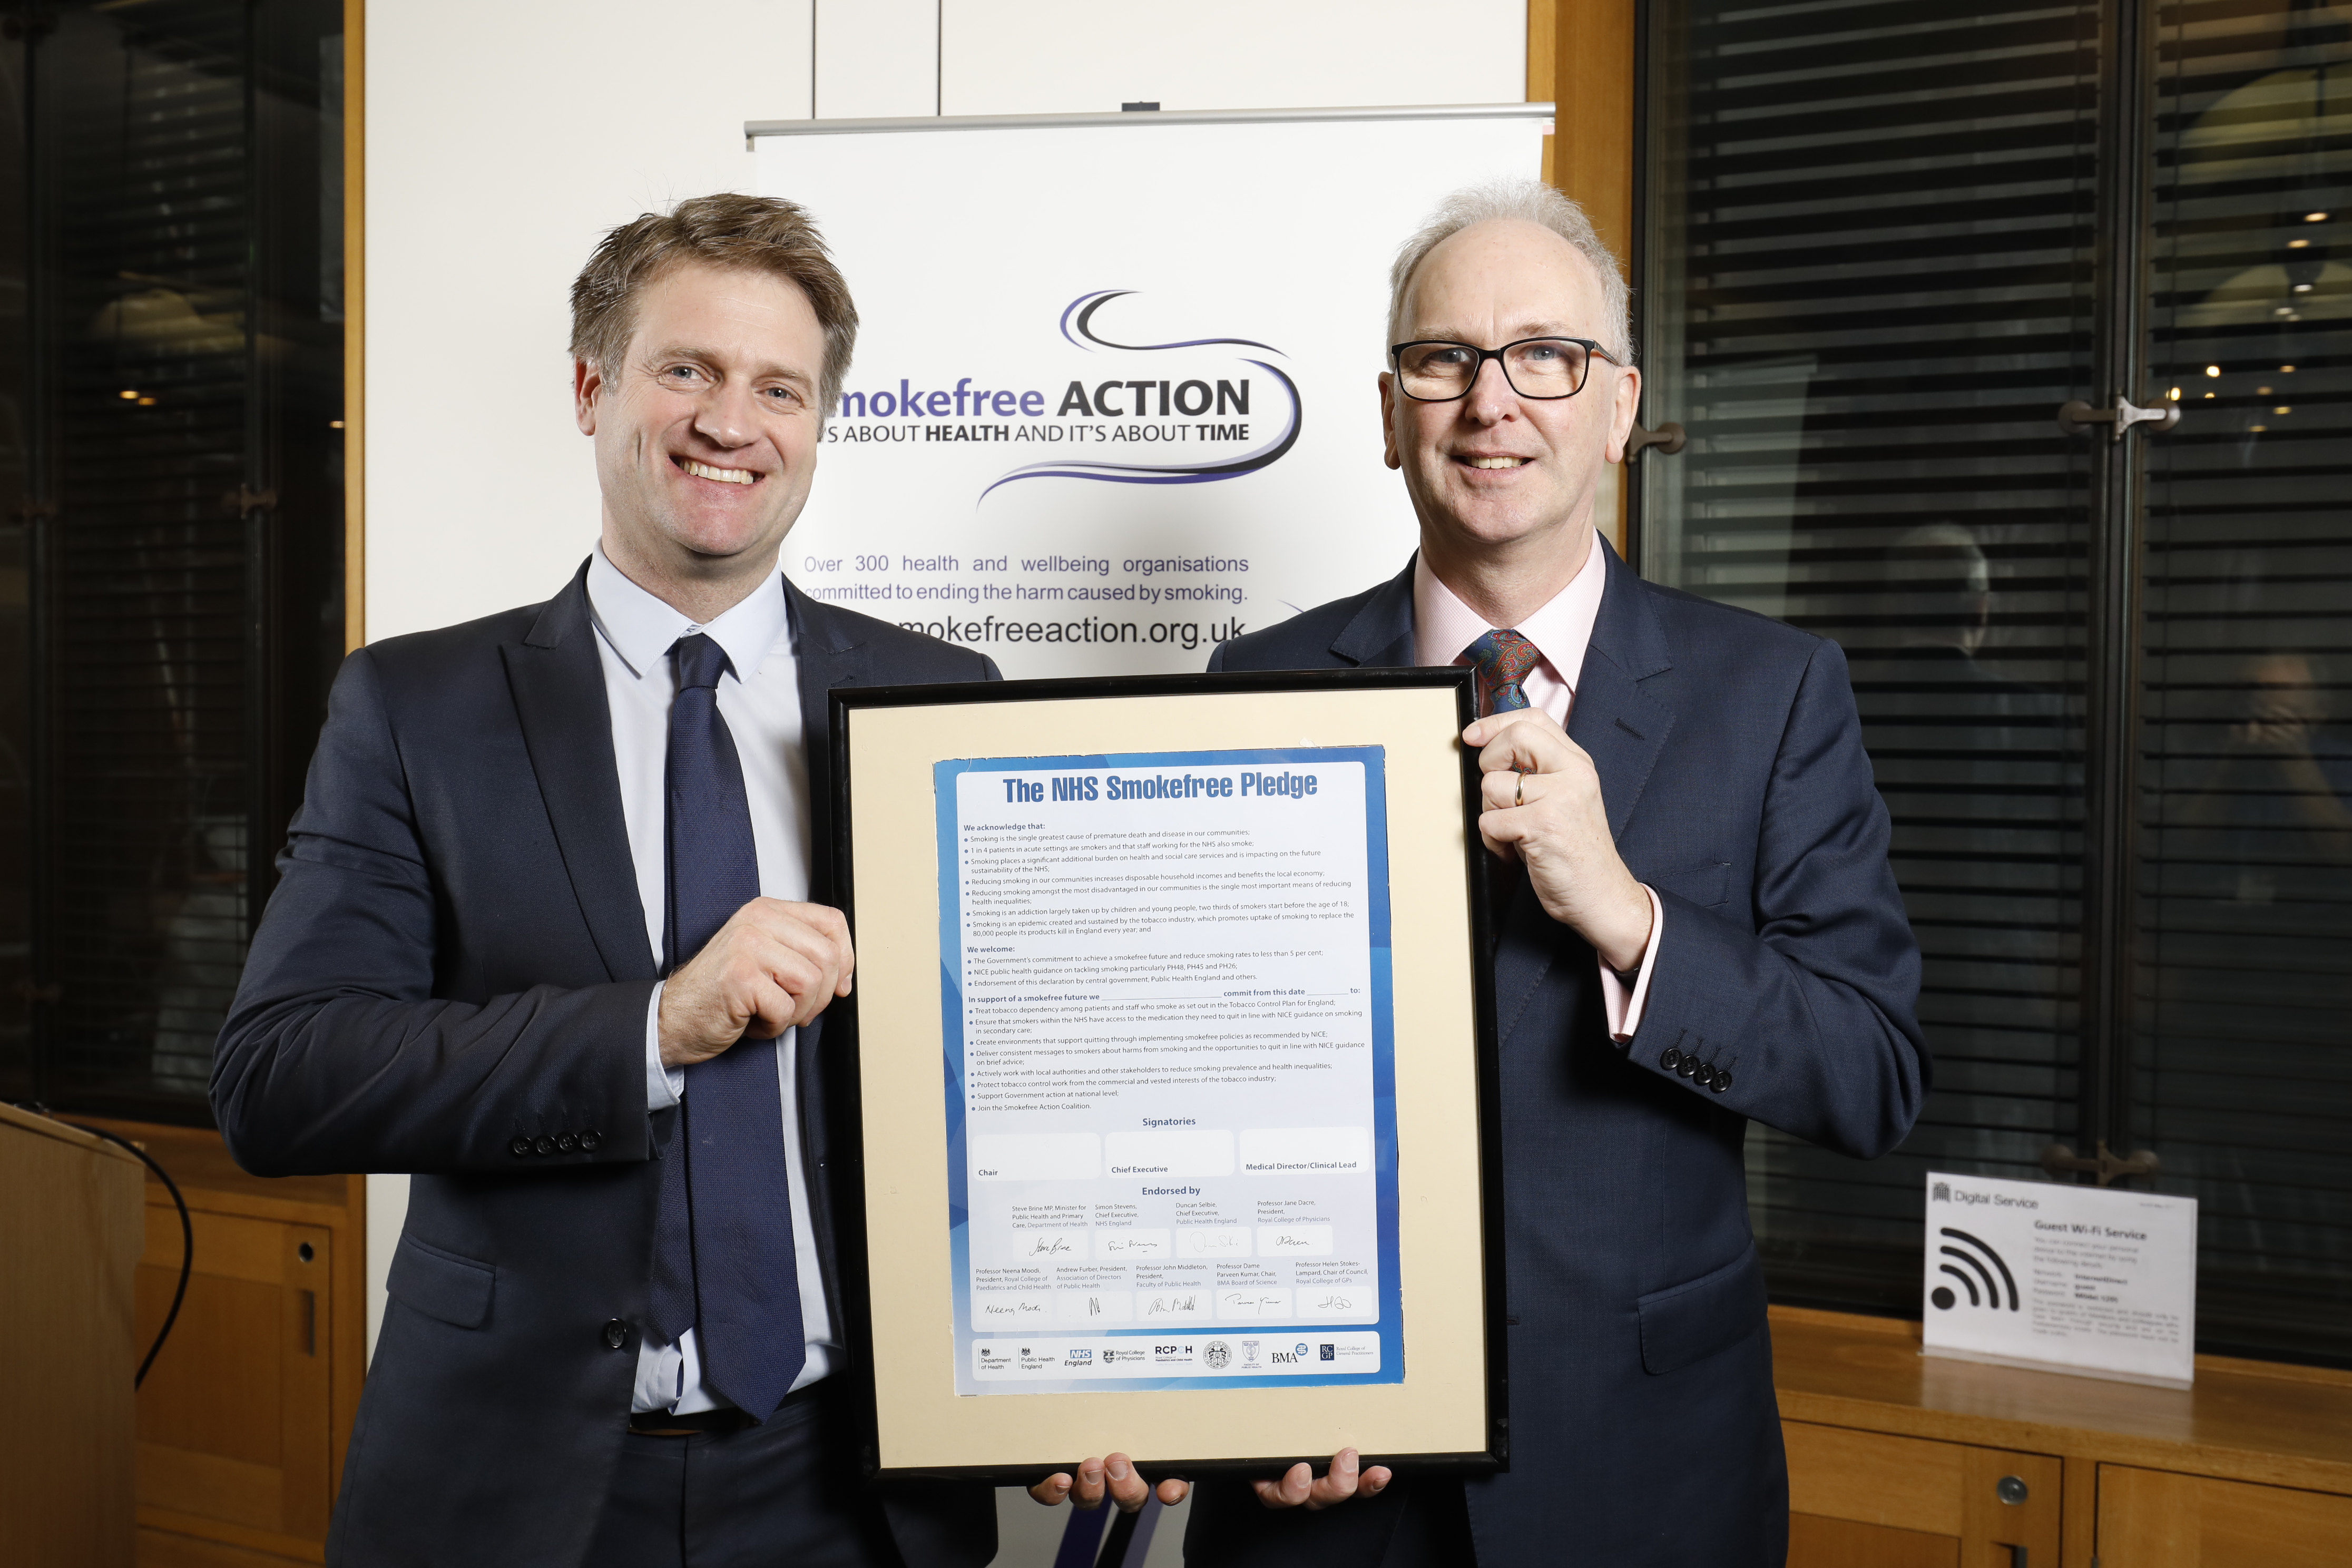 Photo of Professor Sean Duffy and Scott Crosby at launch of NHS Smokefree Pledge